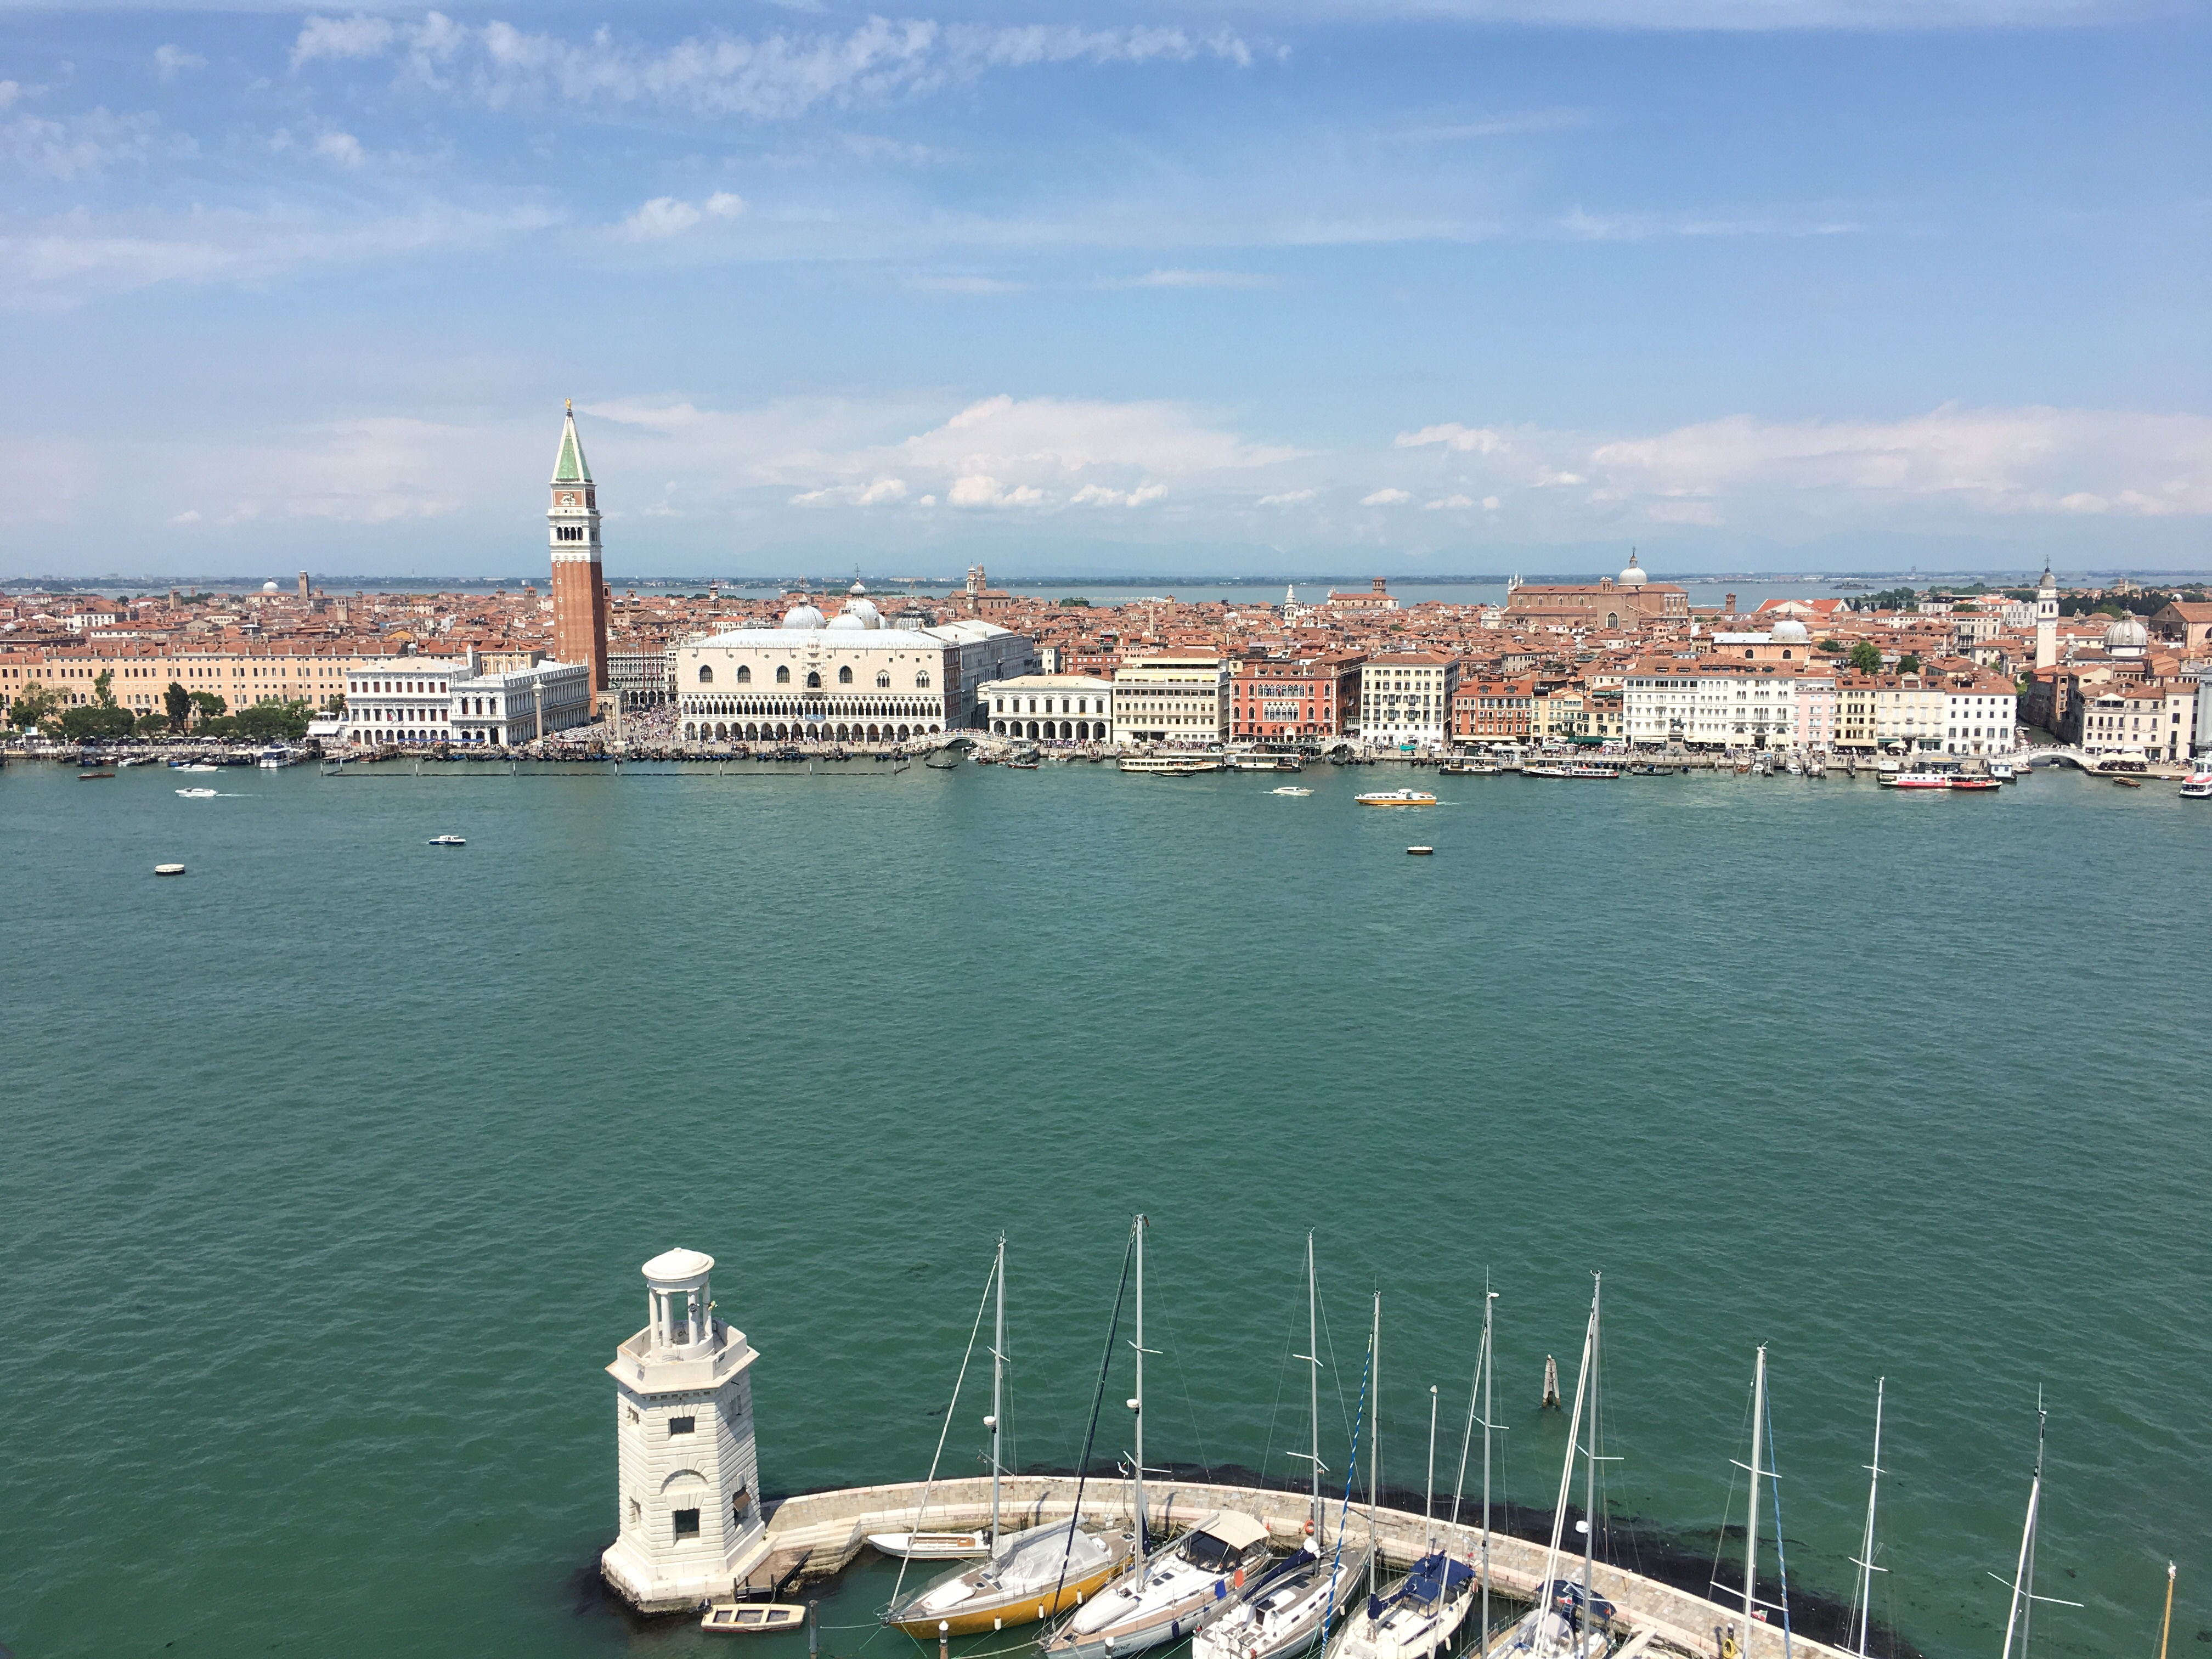 When you are out on the lagoon don't miss the view from San Giorgio Maggiore. As the Italians say it is 'stupenda'